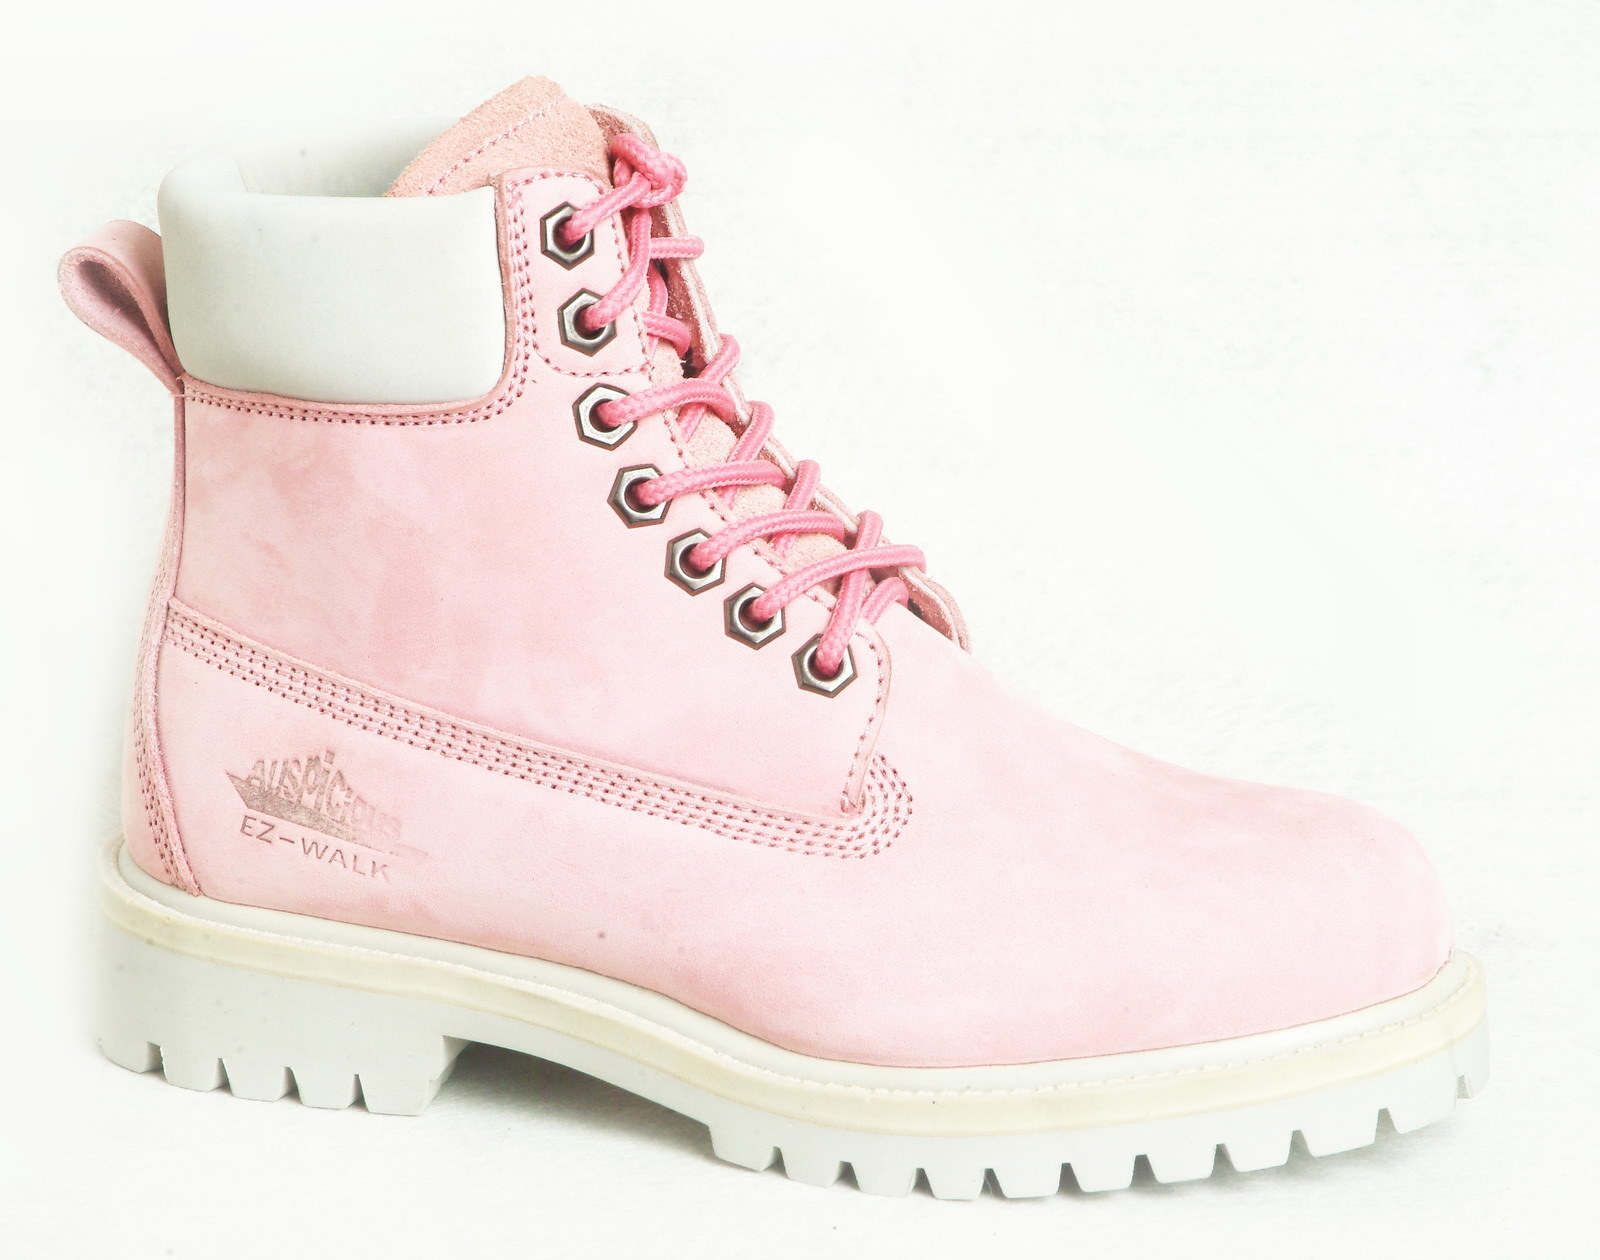 Clothing stores online Cute steel toe shoes for women